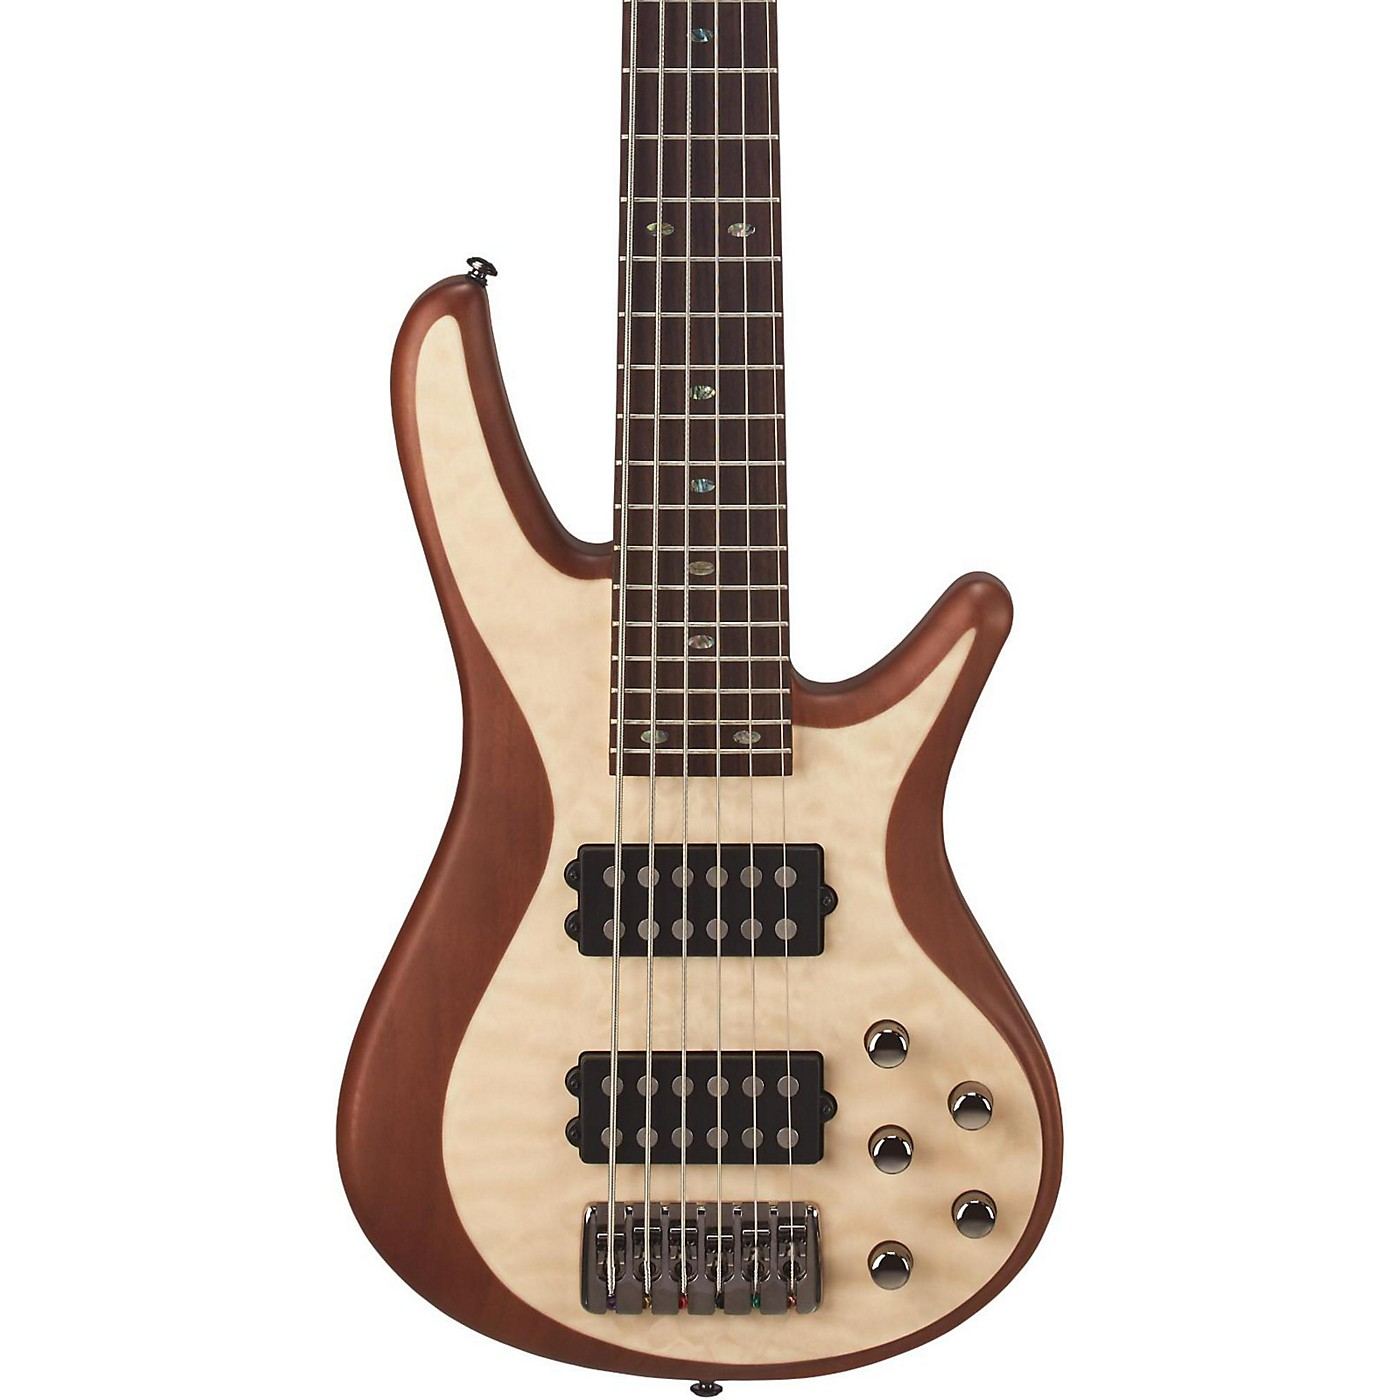 Mitchell FB706 Fusion Series 6-String Bass Guitar with Active EQ thumbnail